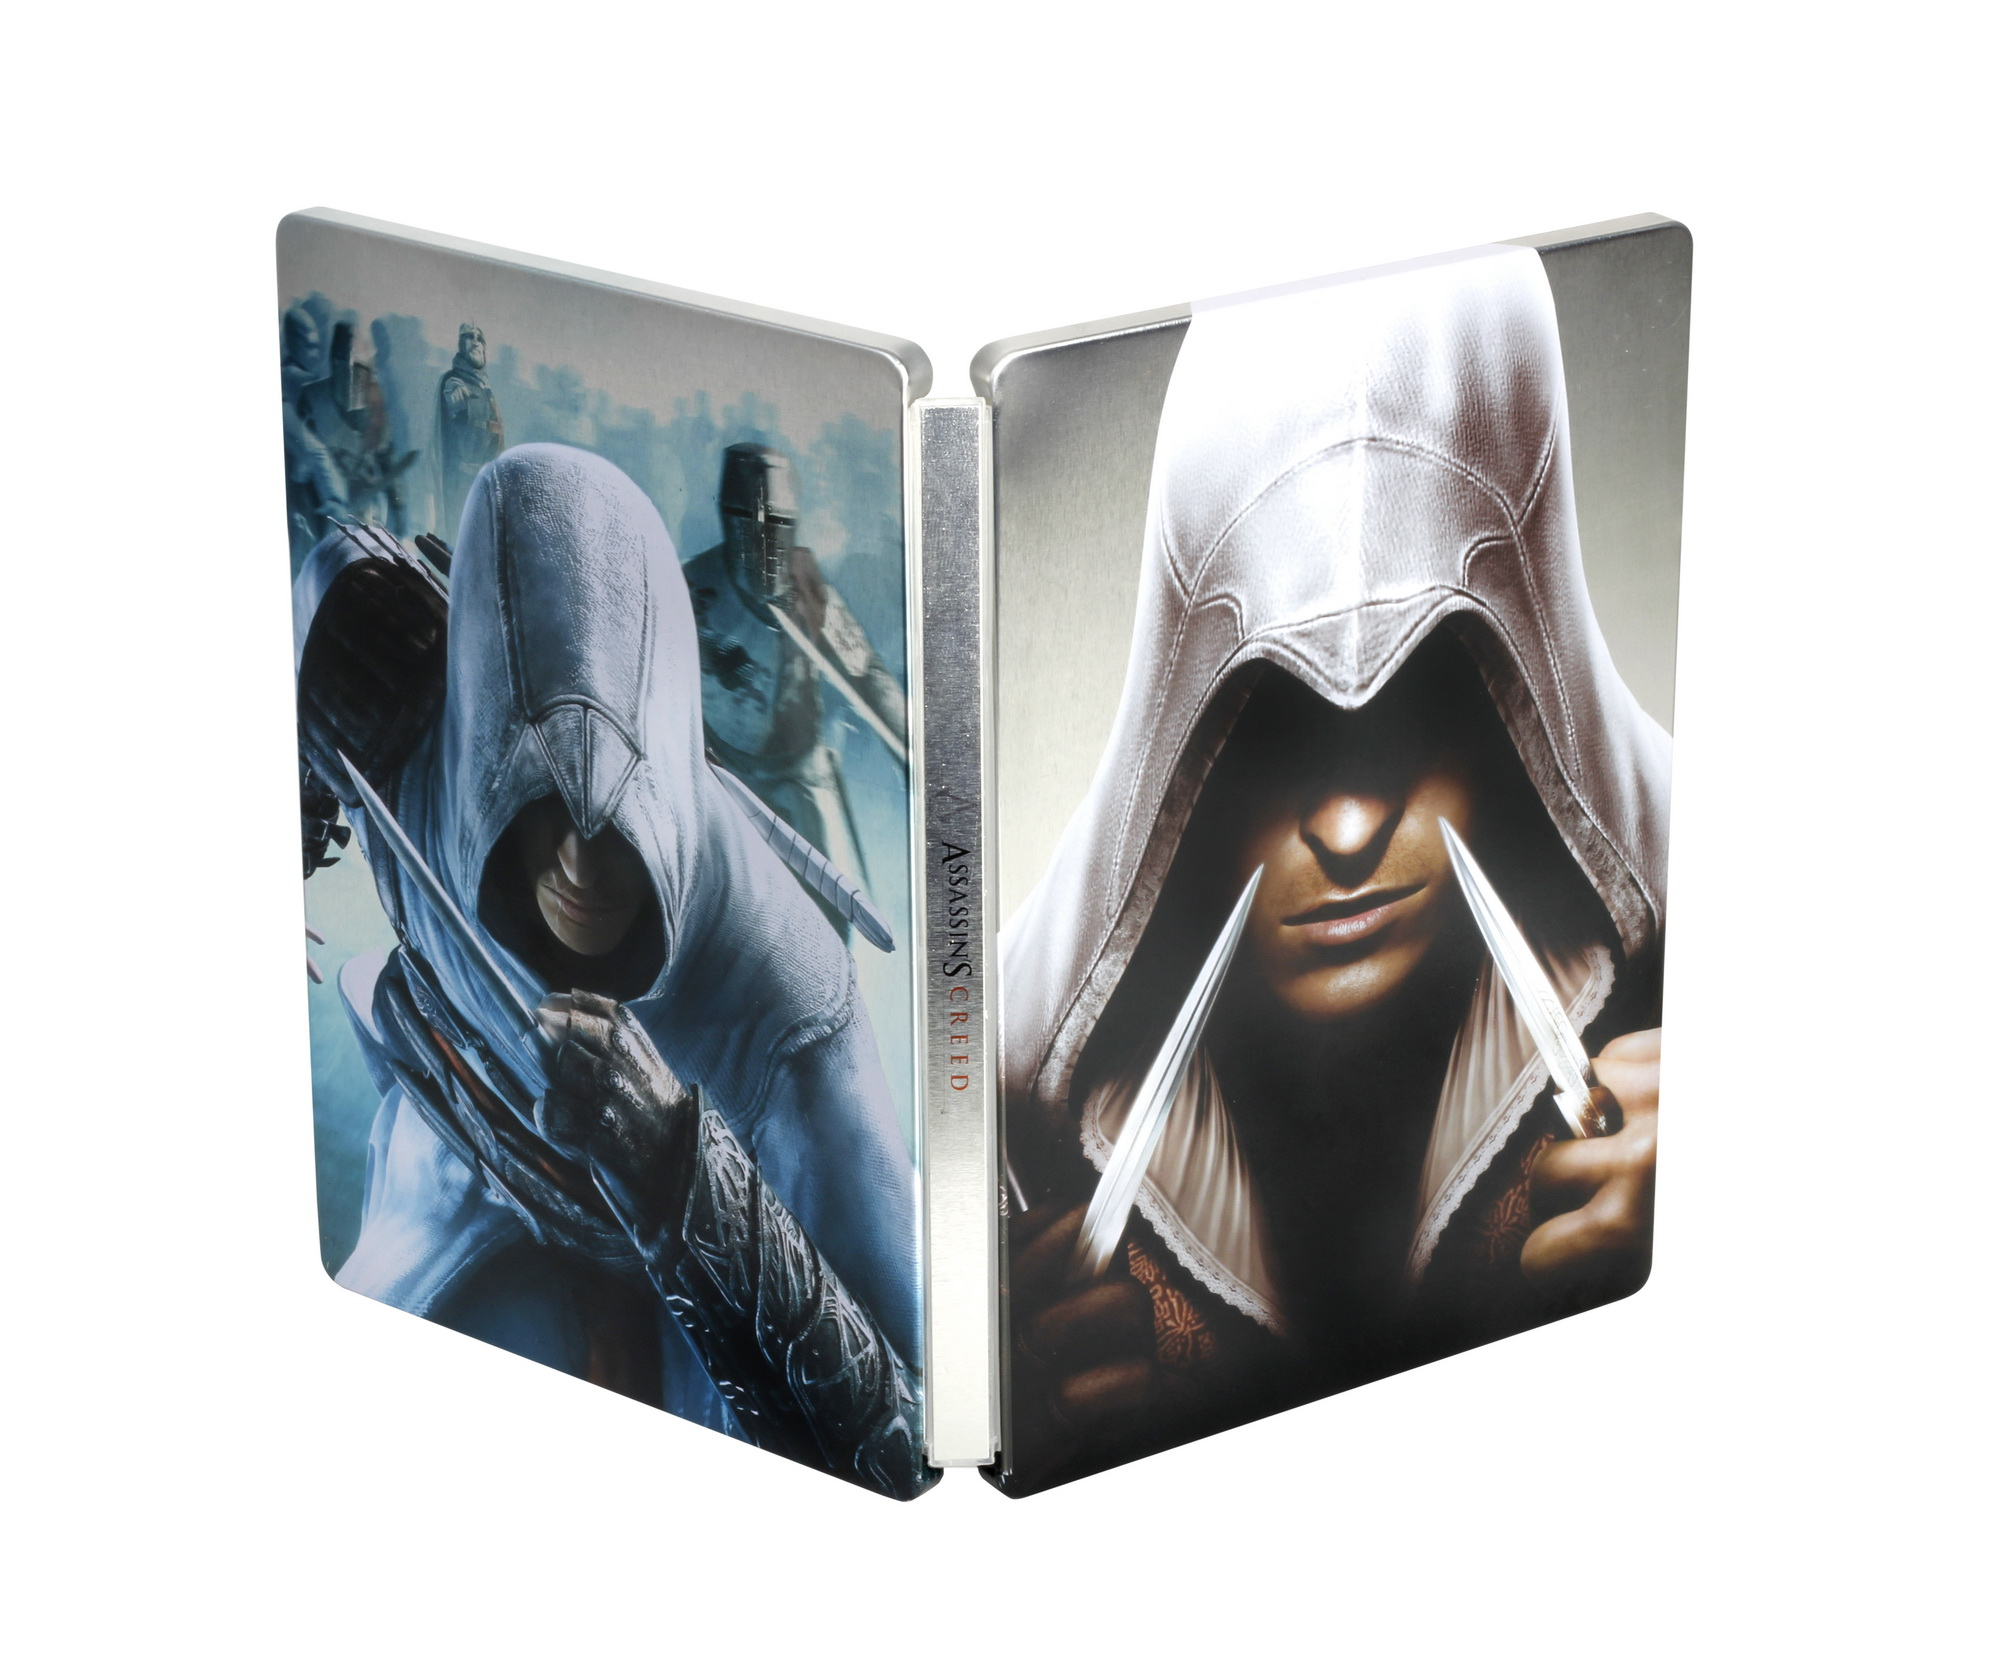 Assassin Creed Serie Steelbook